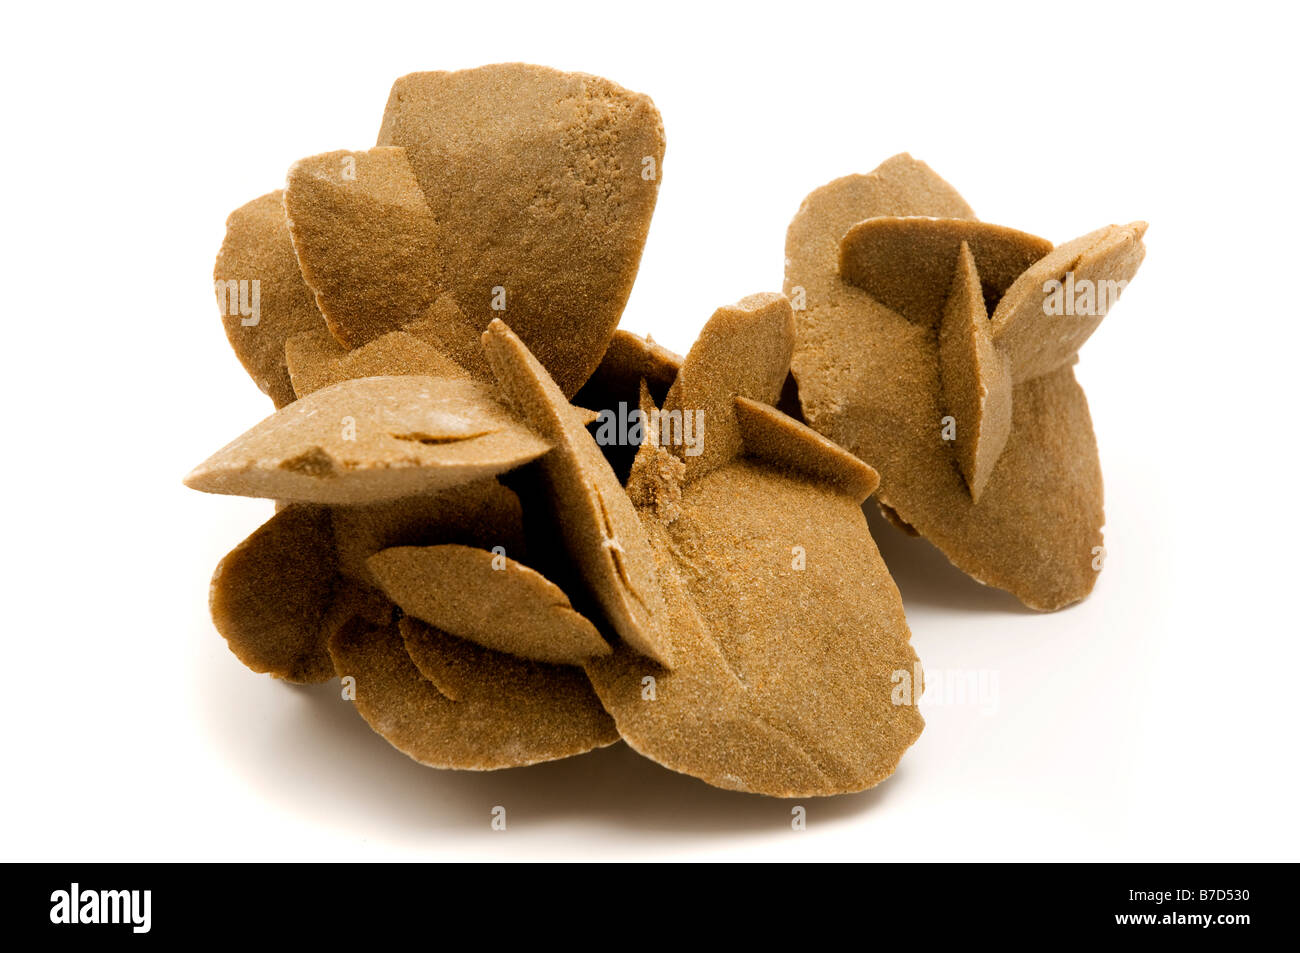 Desert Rose Rosette formations of the minerals gypsum and barite with poikilotopic sand inclusions on a white background - Stock Image